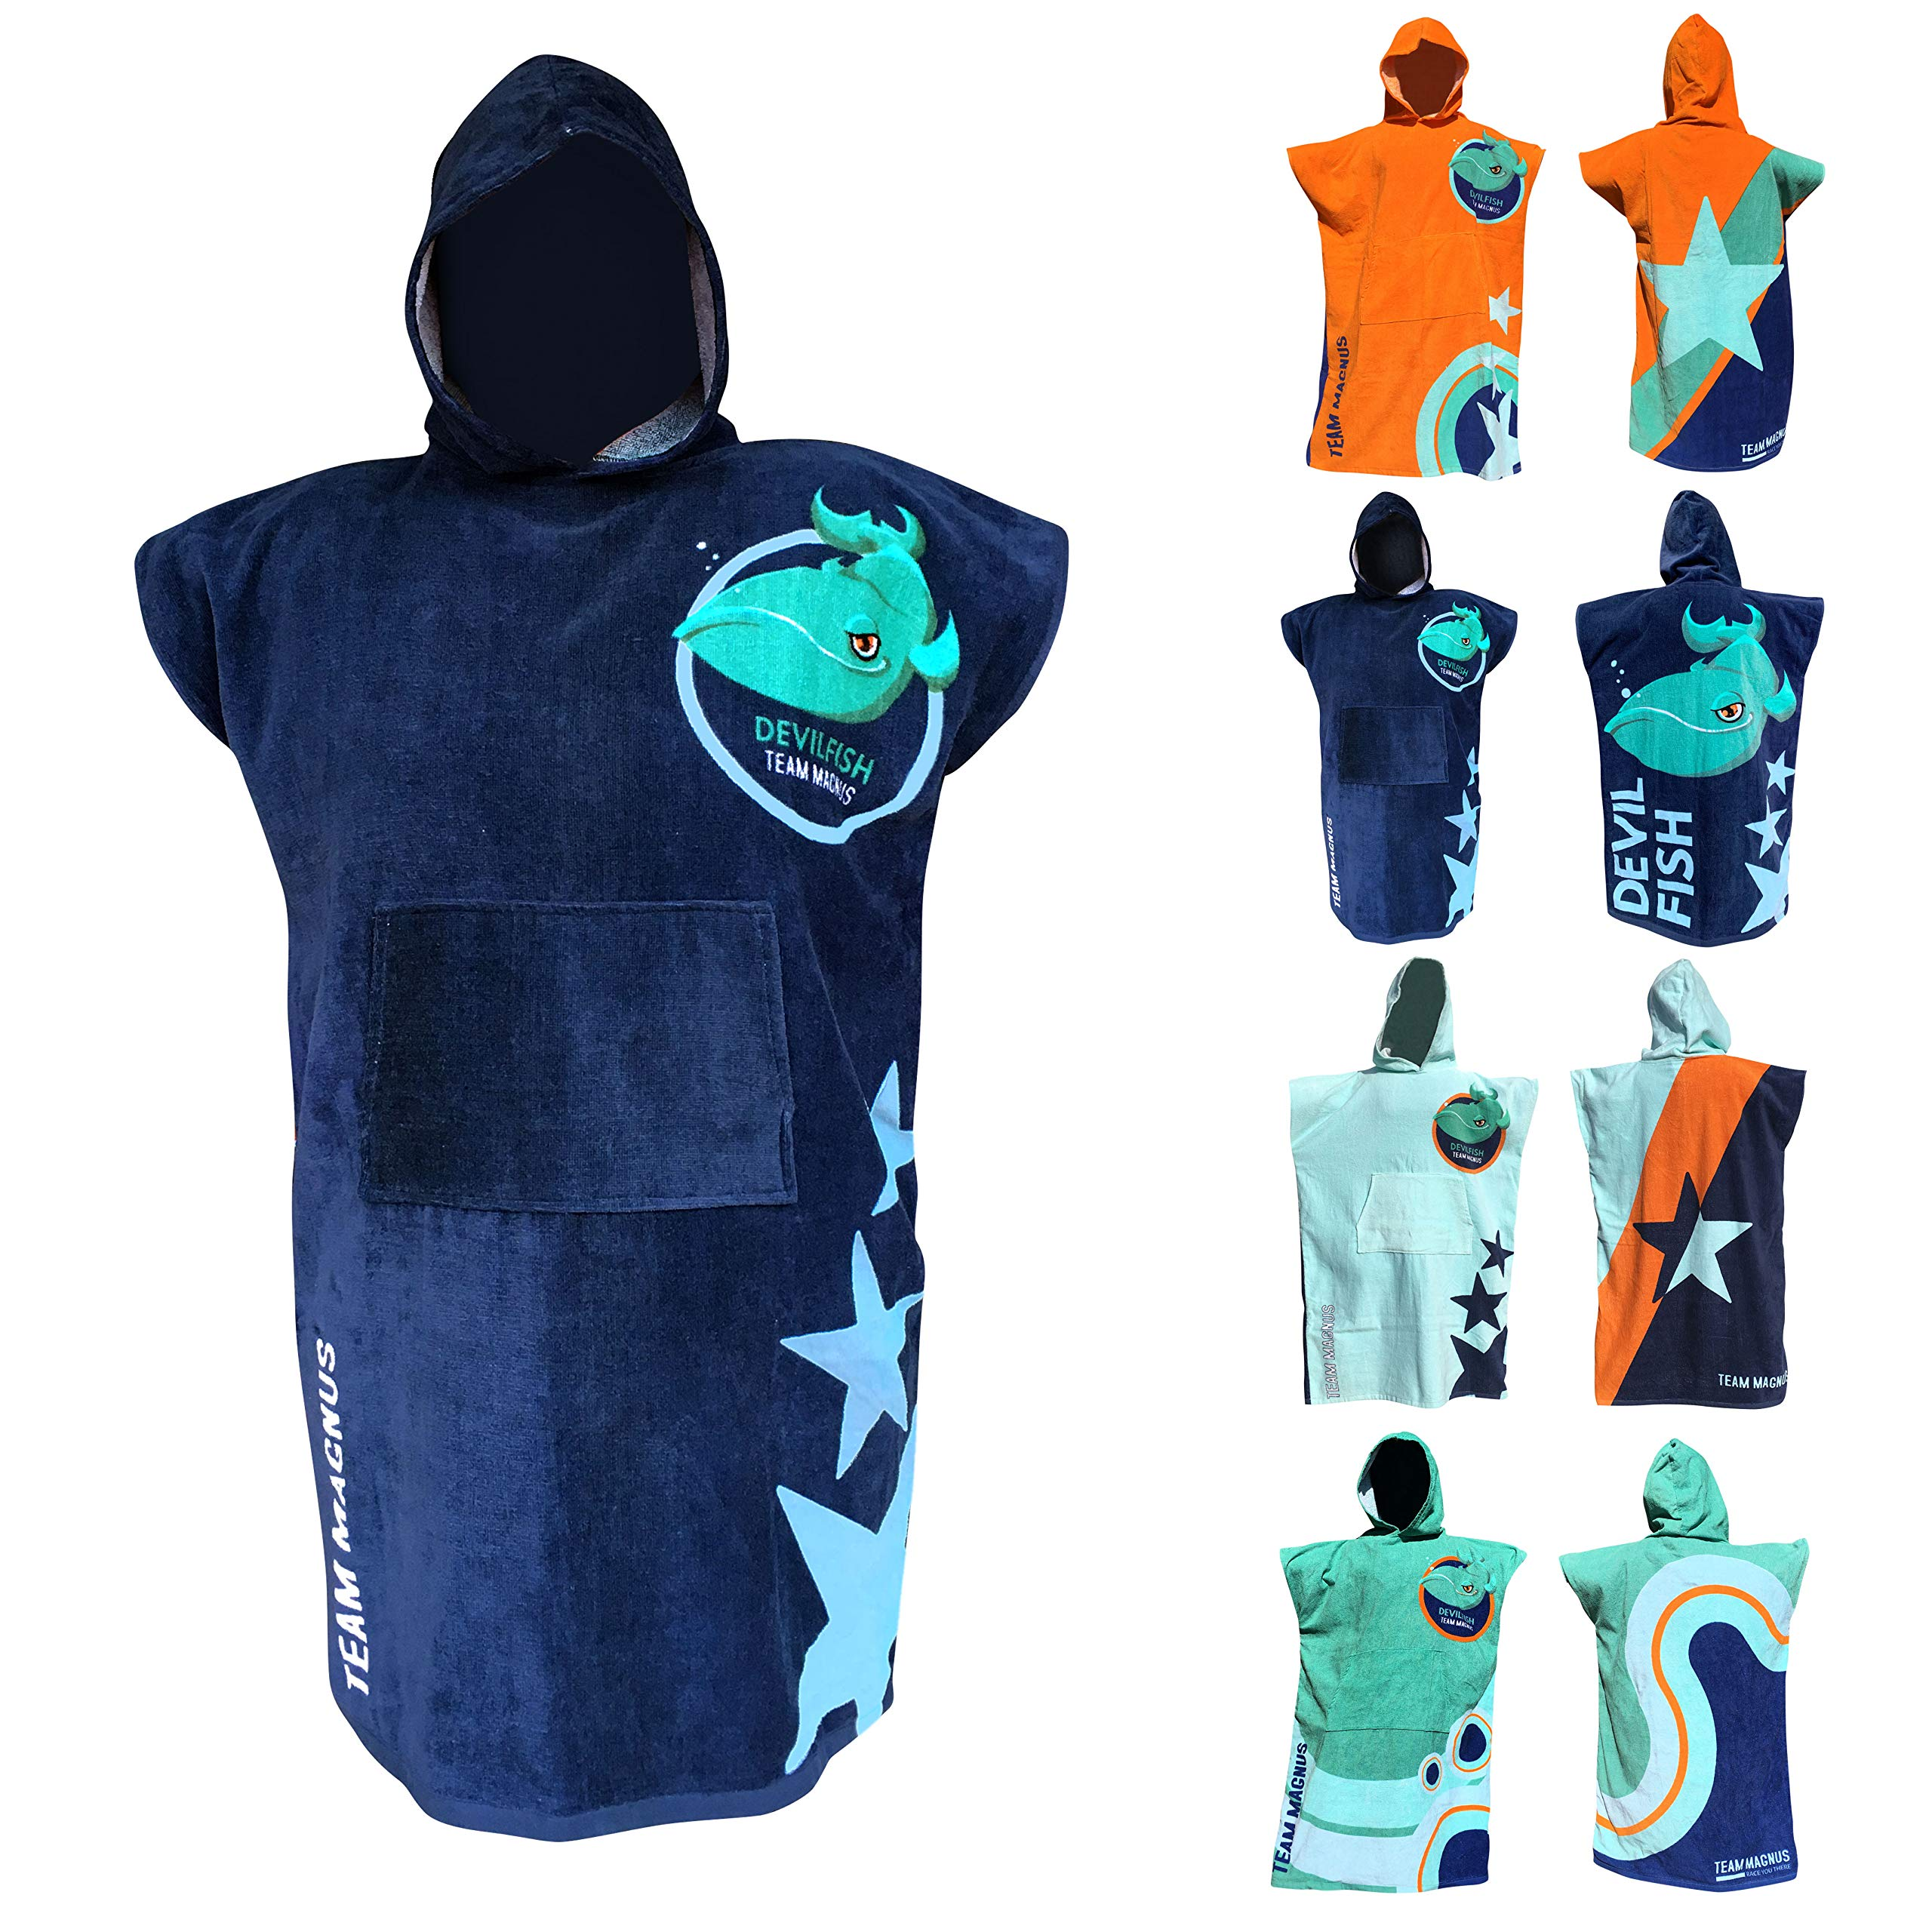 TEAM MAGNUS Towel and Bathrobe - Stylish Bath Towel Design in 4 Cool Colors - one Size for Kids 4'-5'6'' (Navy)